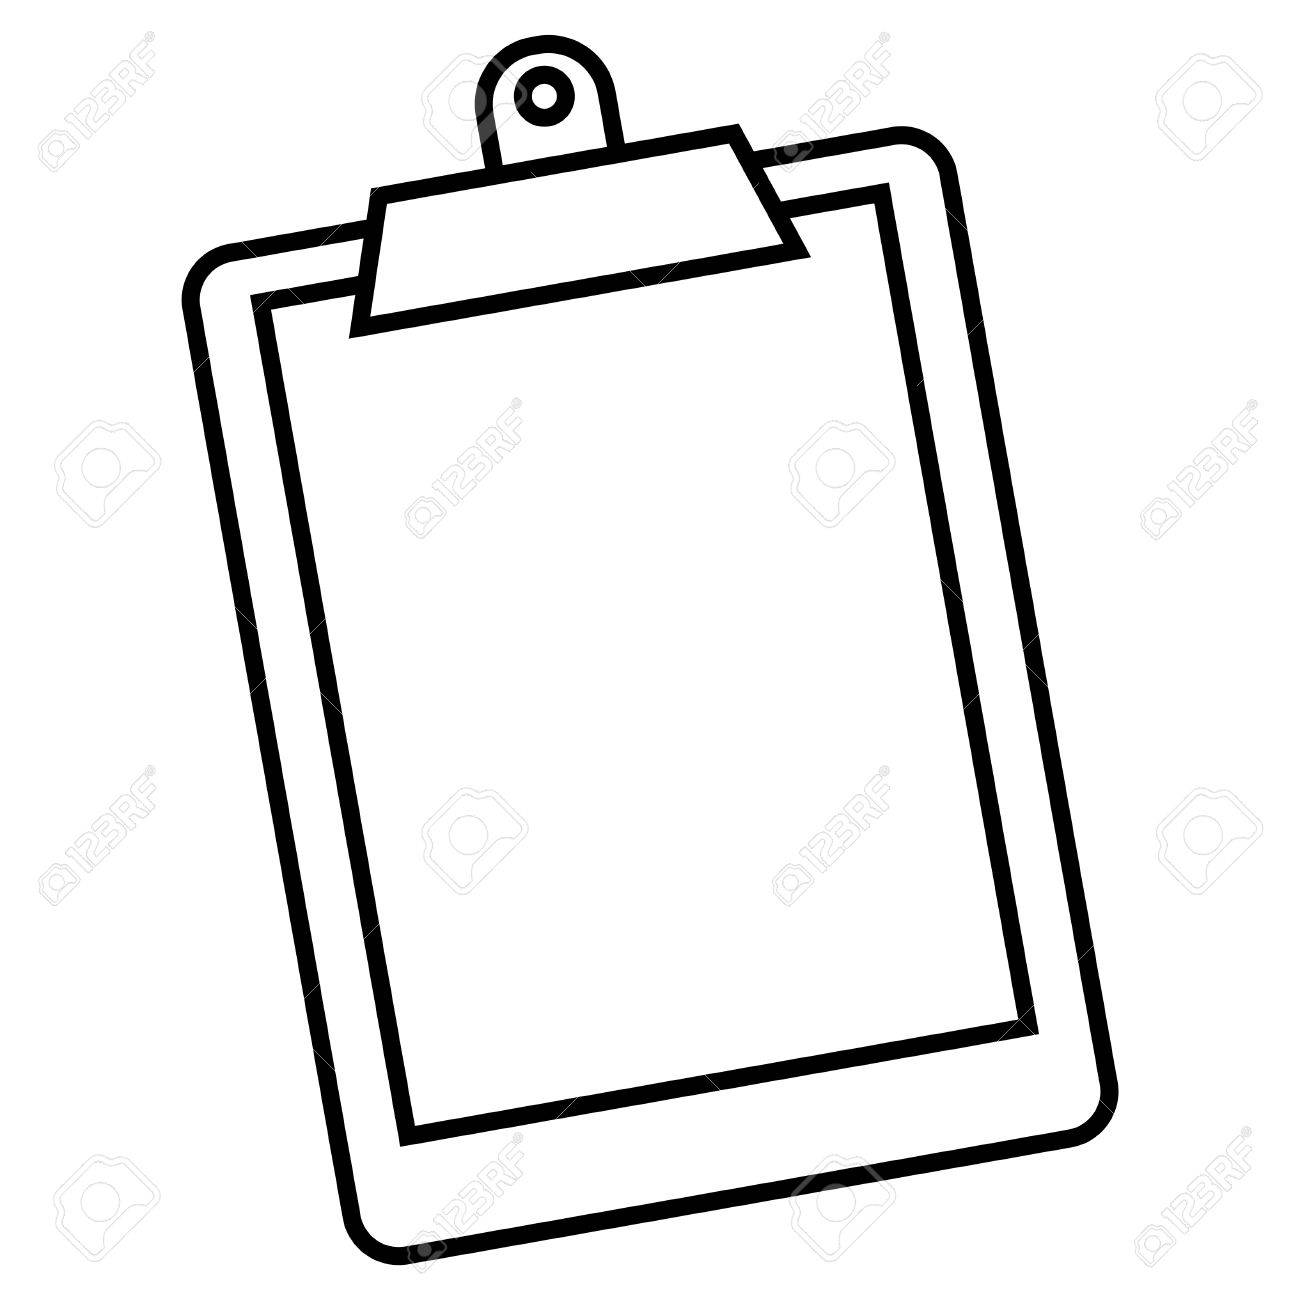 clipboard vector royalty free cliparts vectors and stock rh 123rf com clipboard vector graphic clipboard vector graphic